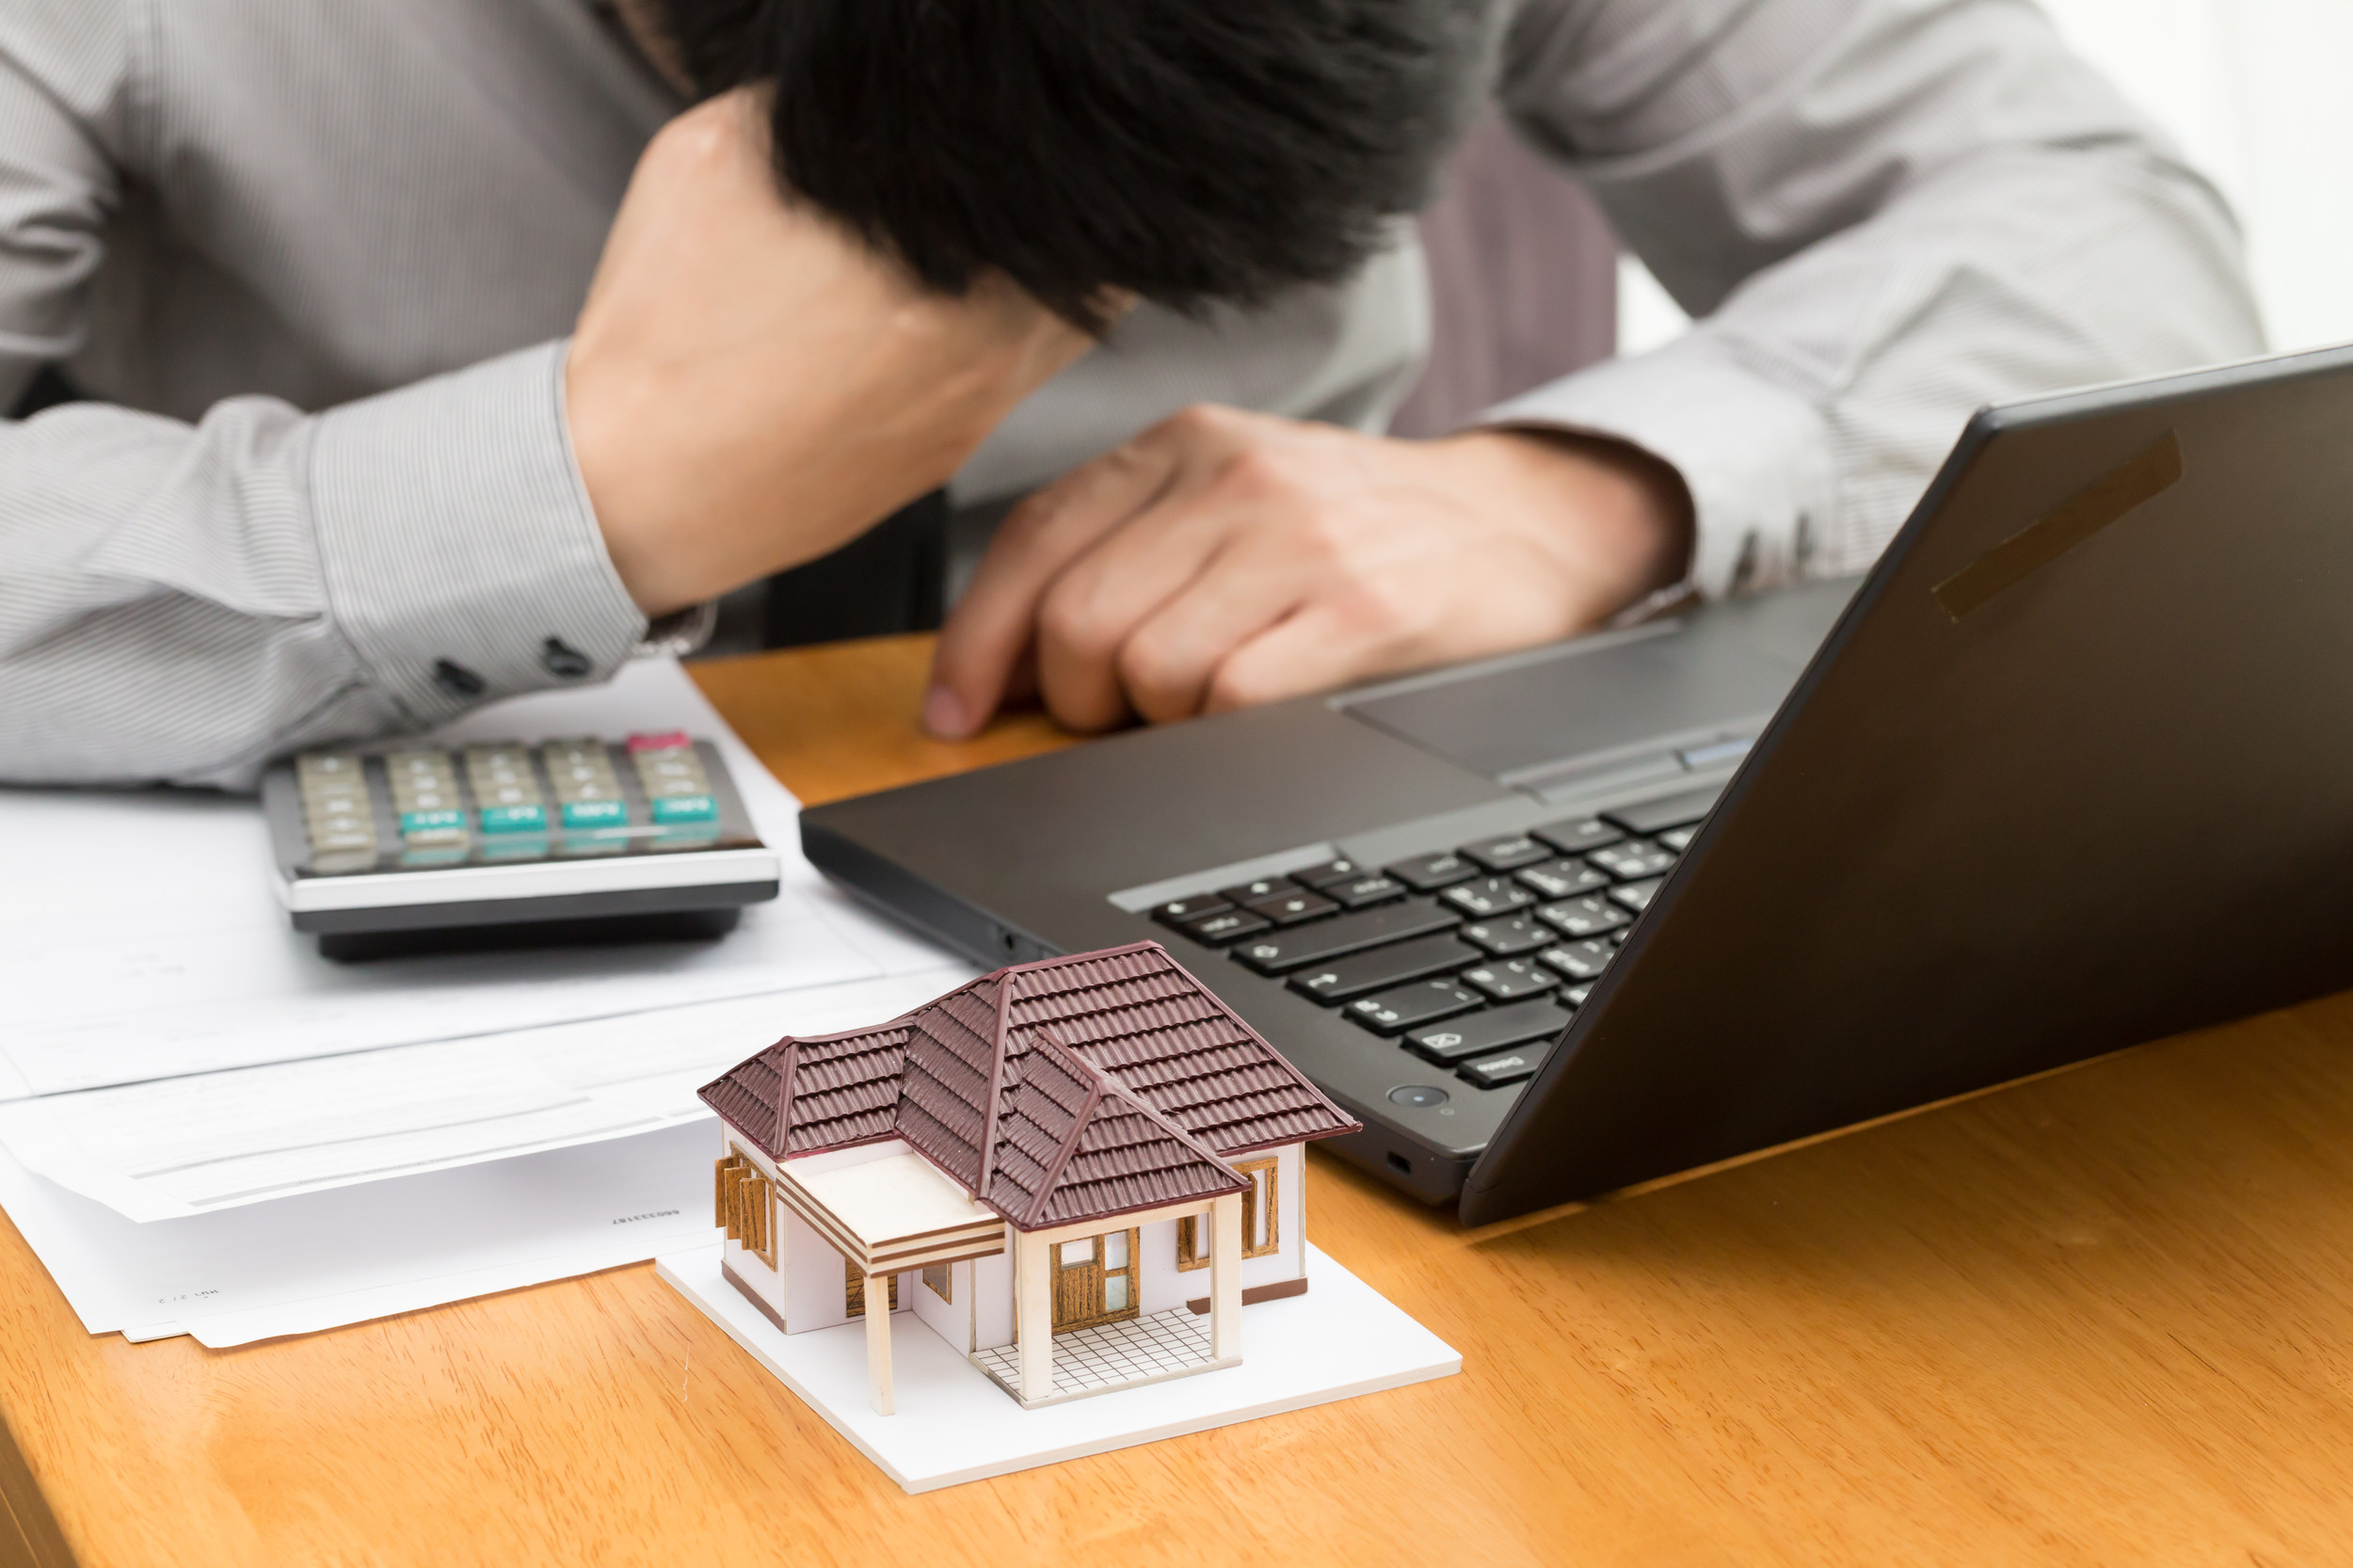 Seven signs your debt is out of control (and what to do about it)